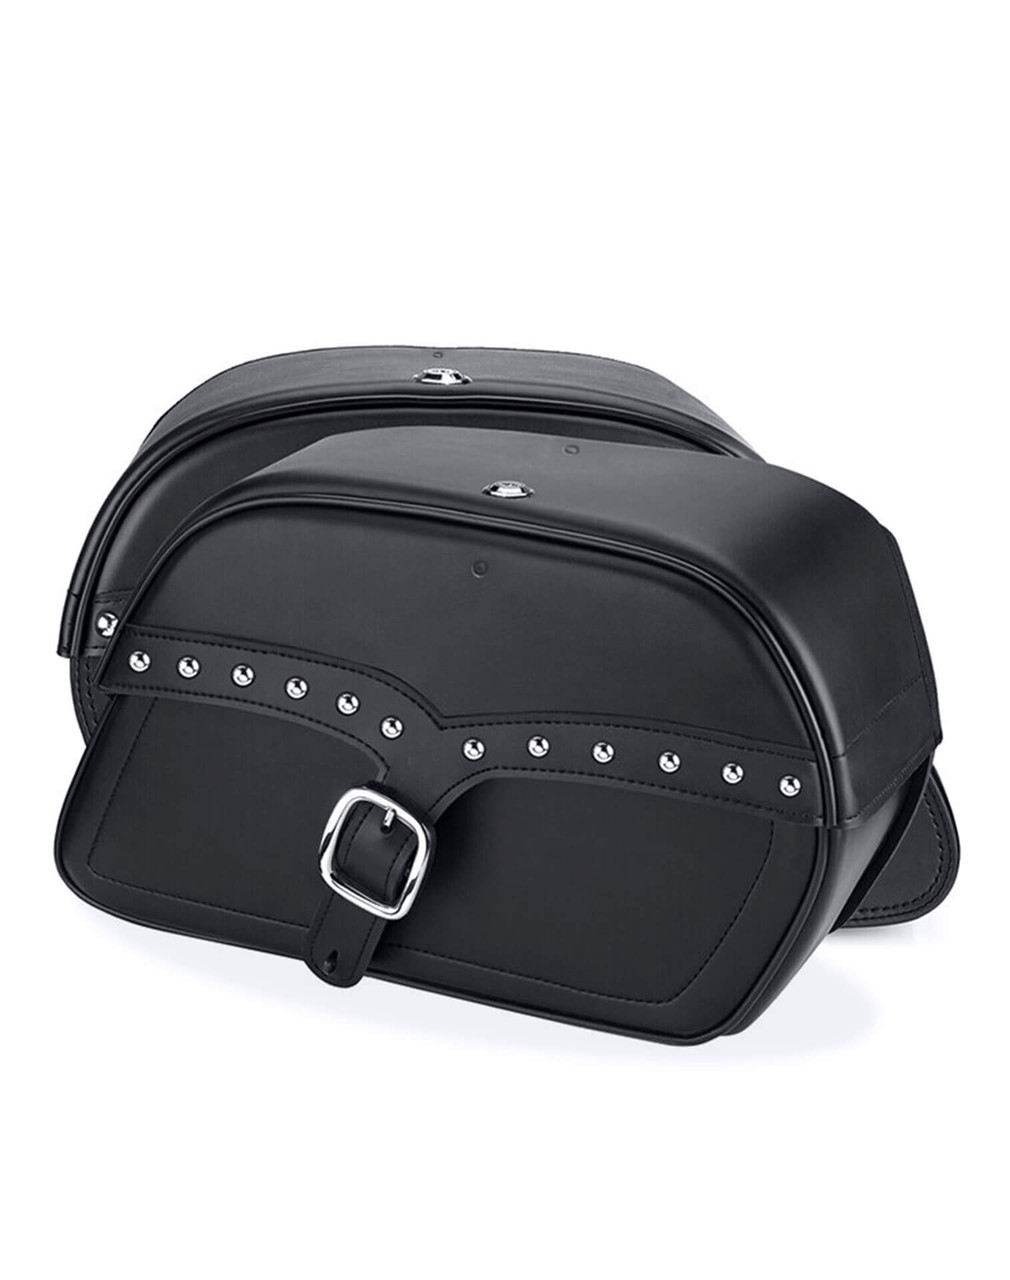 Honda 1500 Valkyrie Interstate Charger Single Strap Studded Motorcycle Saddlebags Both Bags VIew